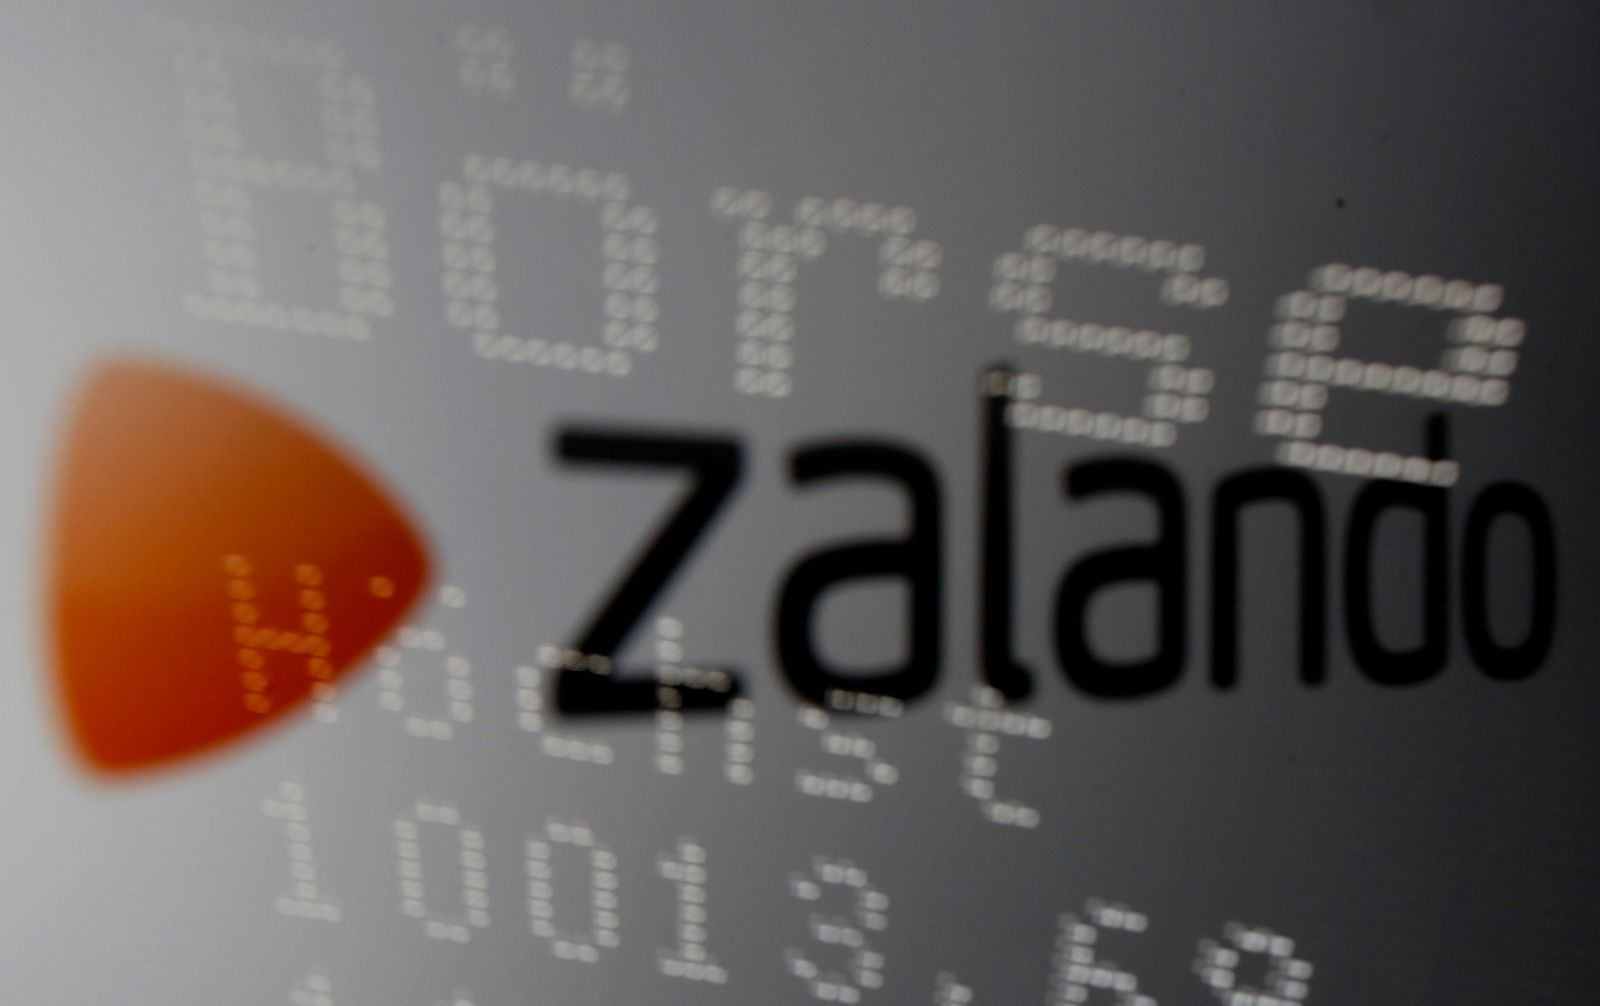 German stock market graph reflected on an iPad display showing Zalando logo picture illustration